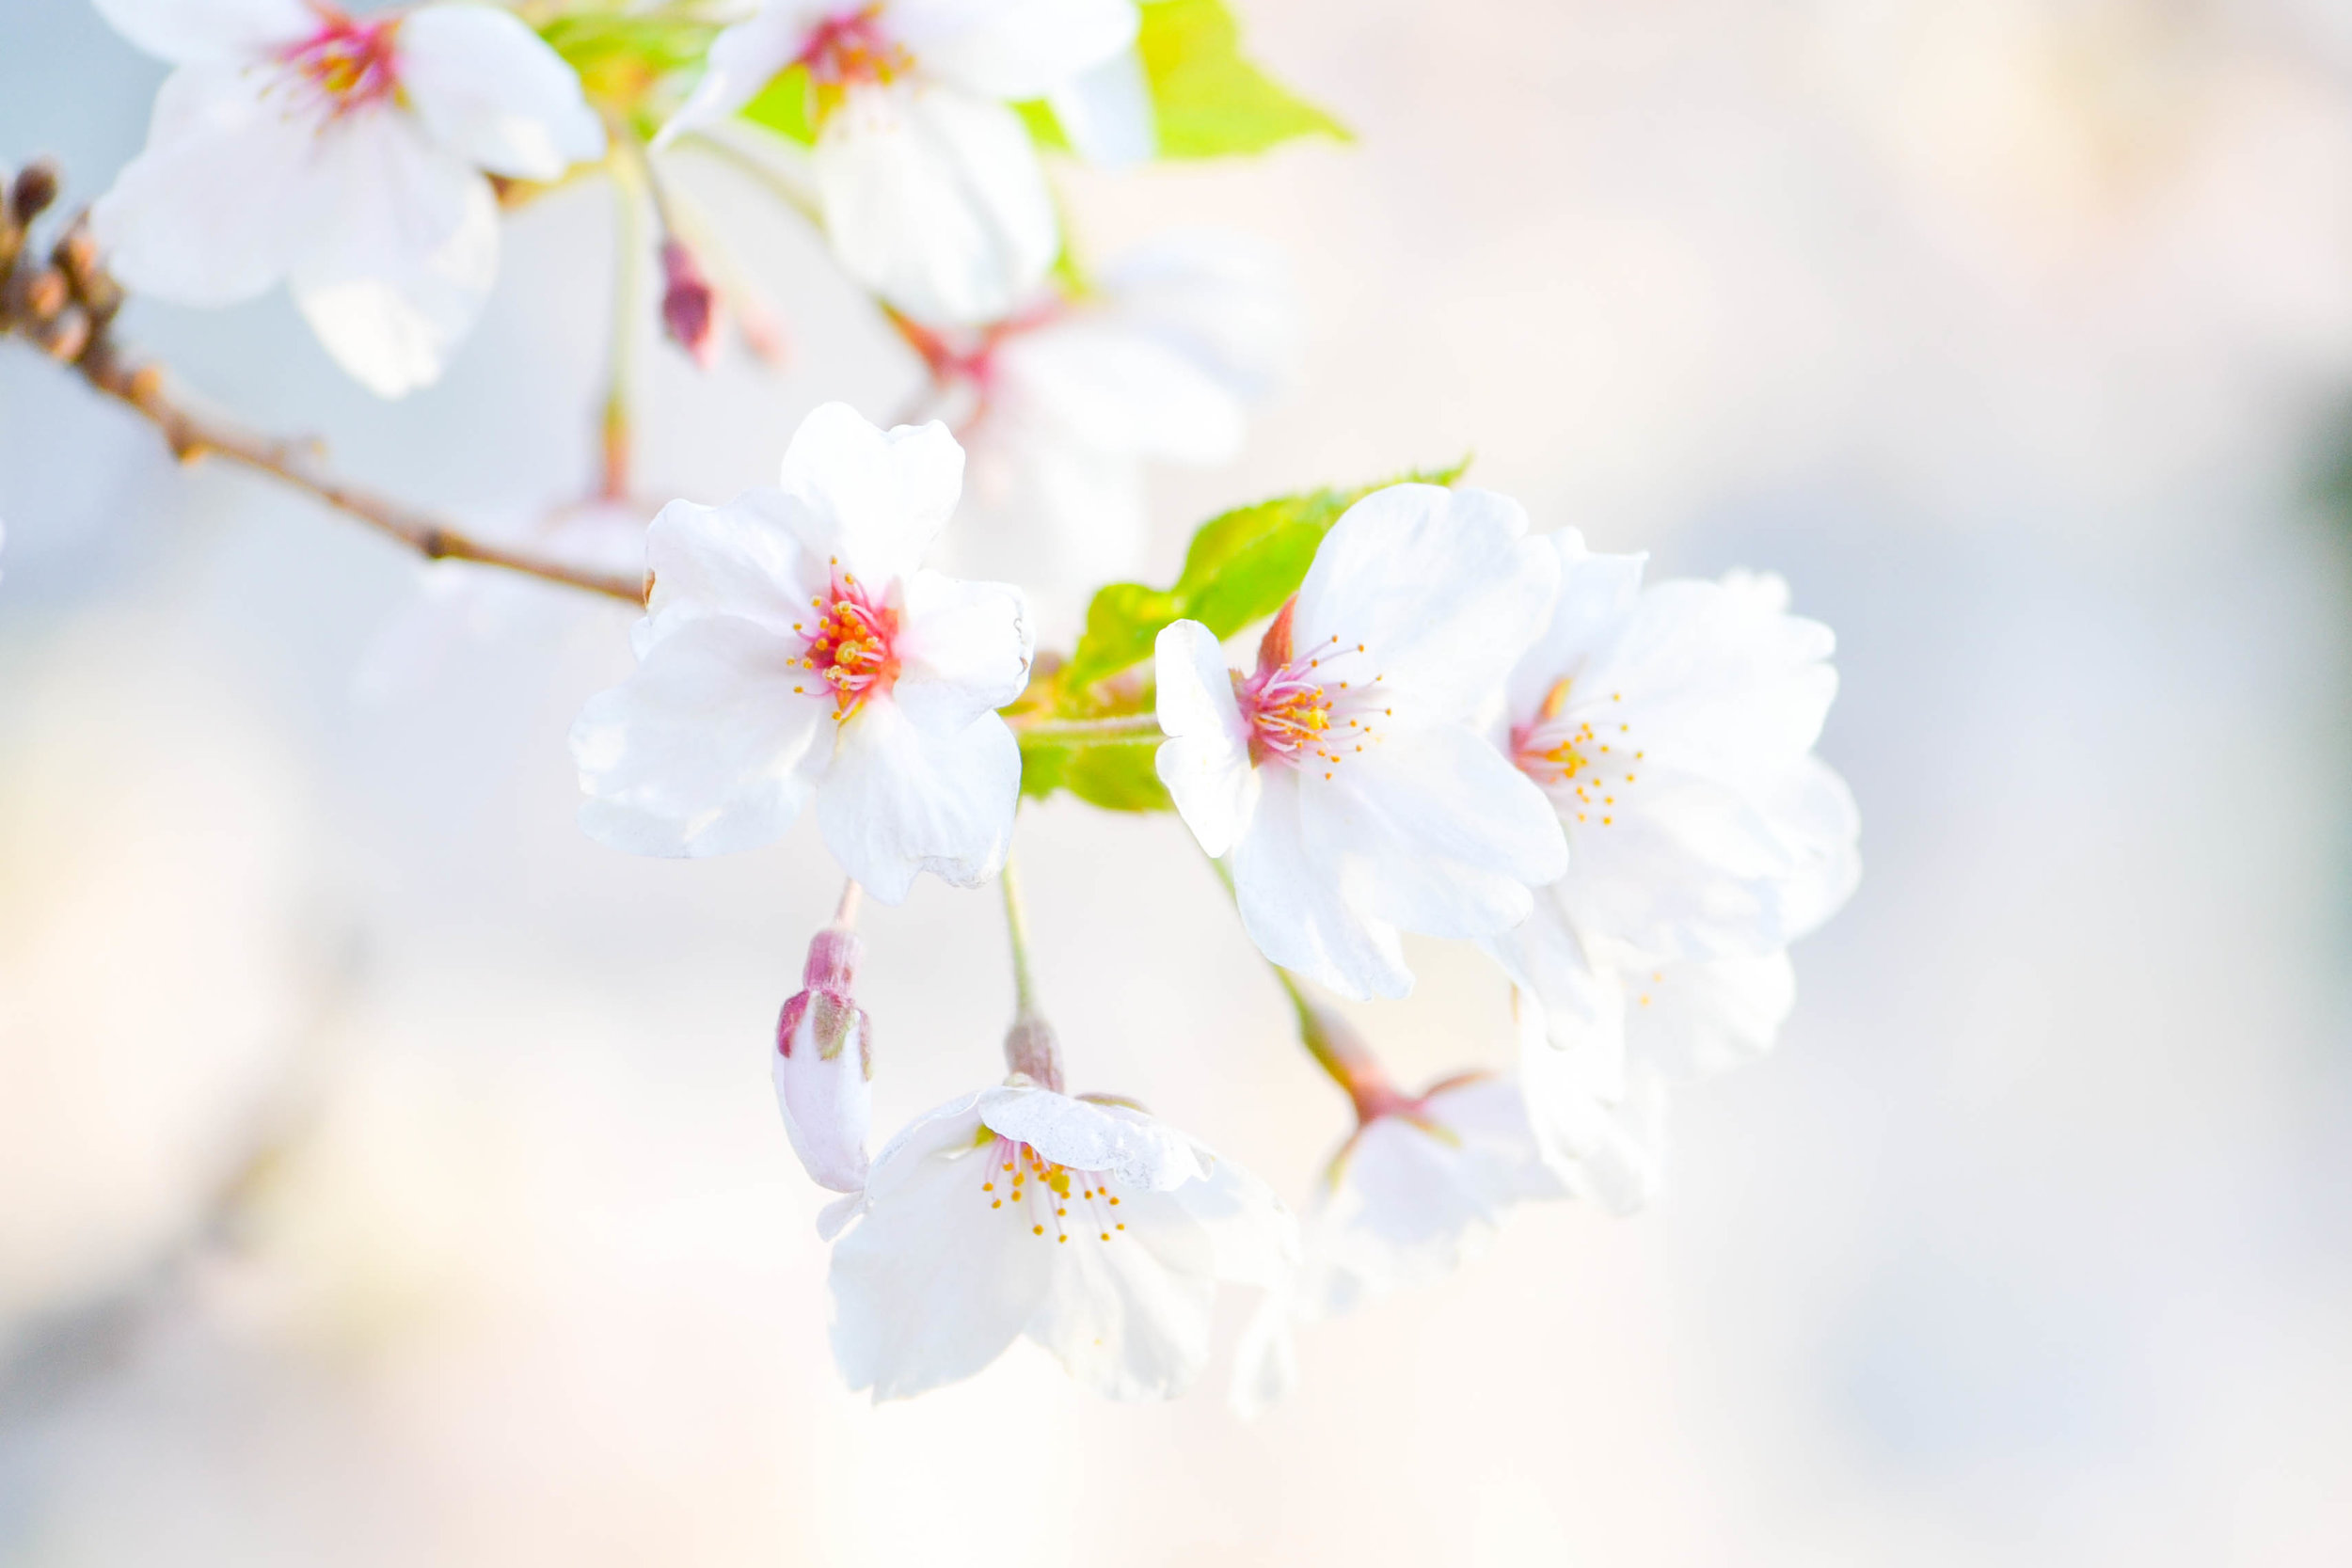 New spring blossoms. Enjoy life with emotional freedom, relieve stress, increase self confidence.